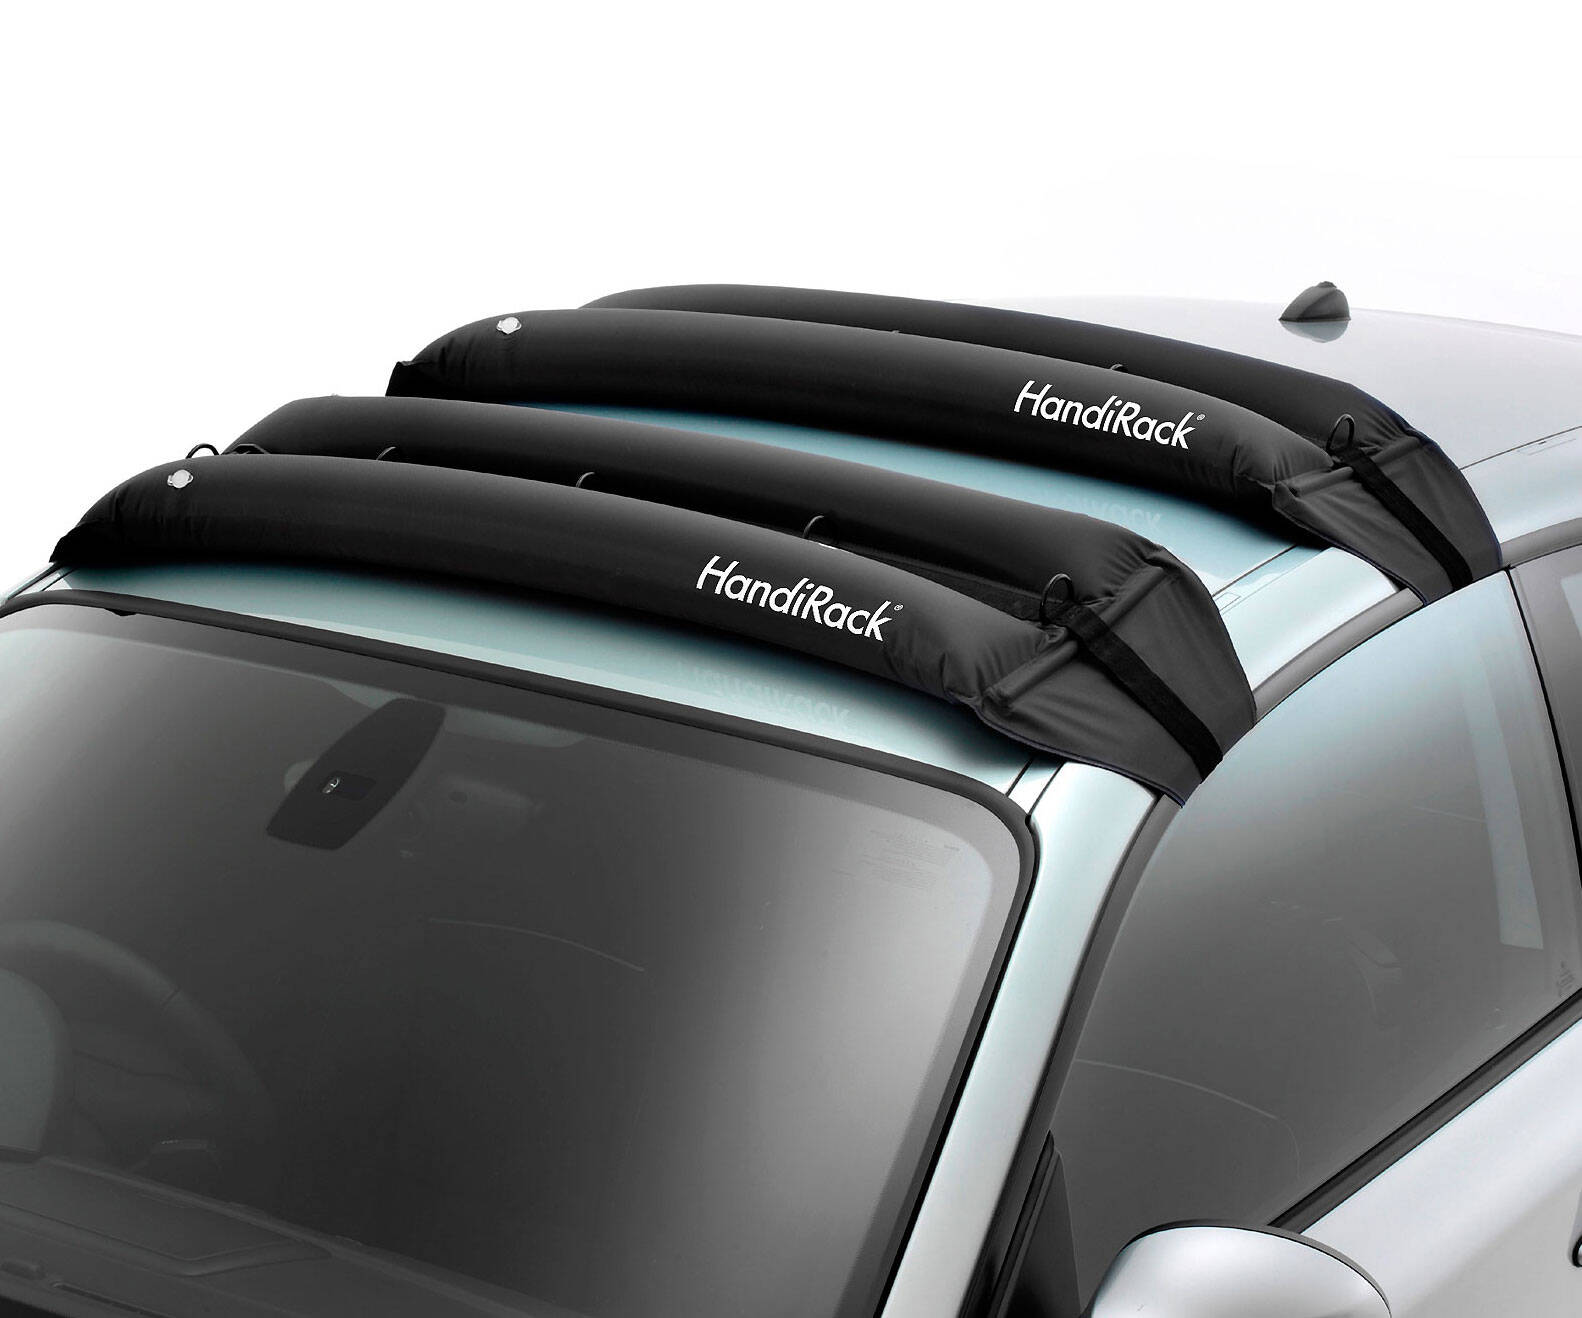 HandiRack Universal Inflatable Vehicle Roof Rack - http://coolthings.us